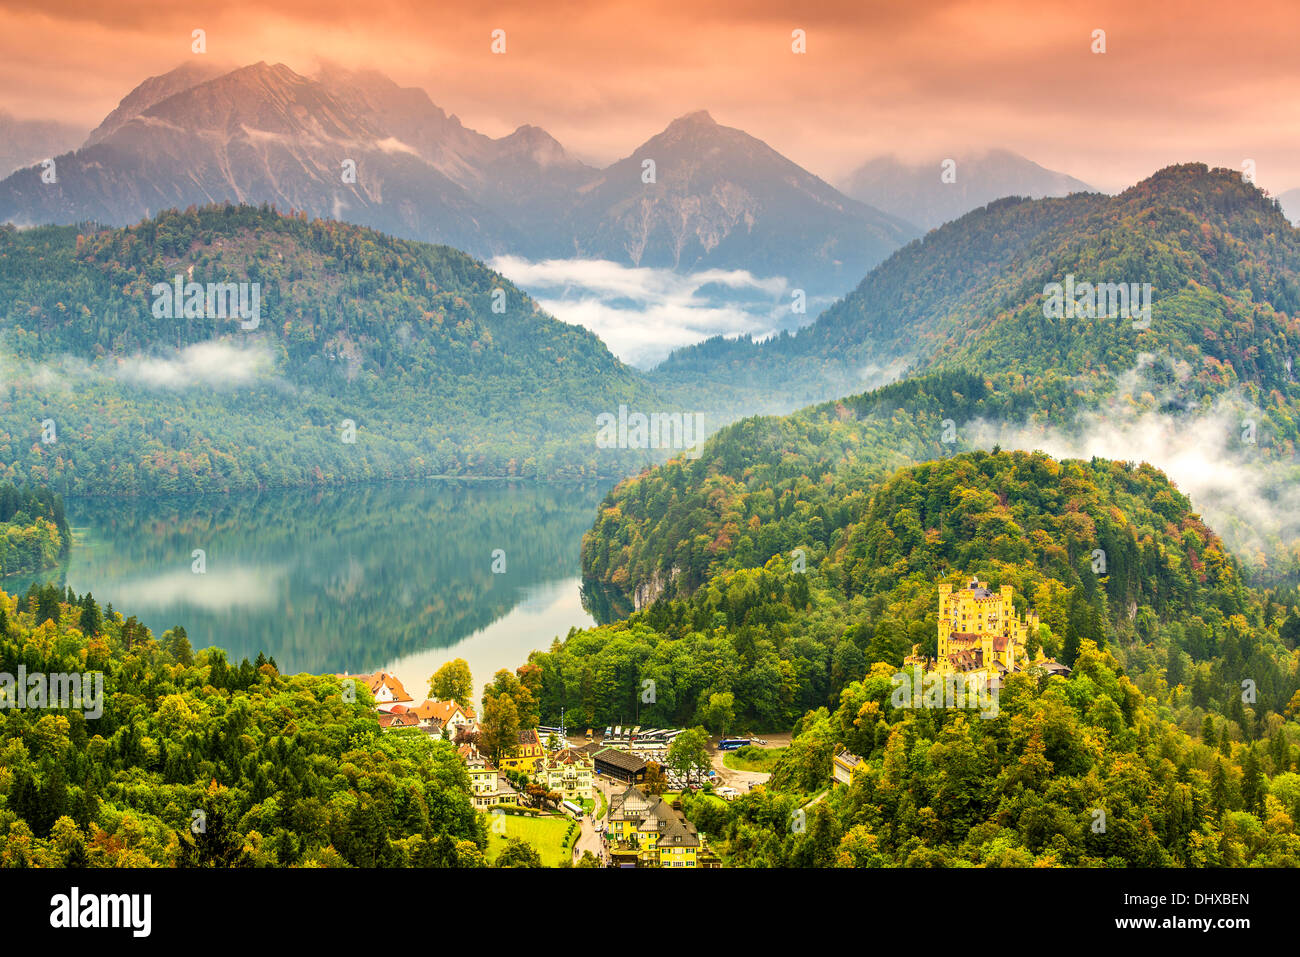 Misty day in the Bavarian Alps near Fussen, Germany. - Stock Image